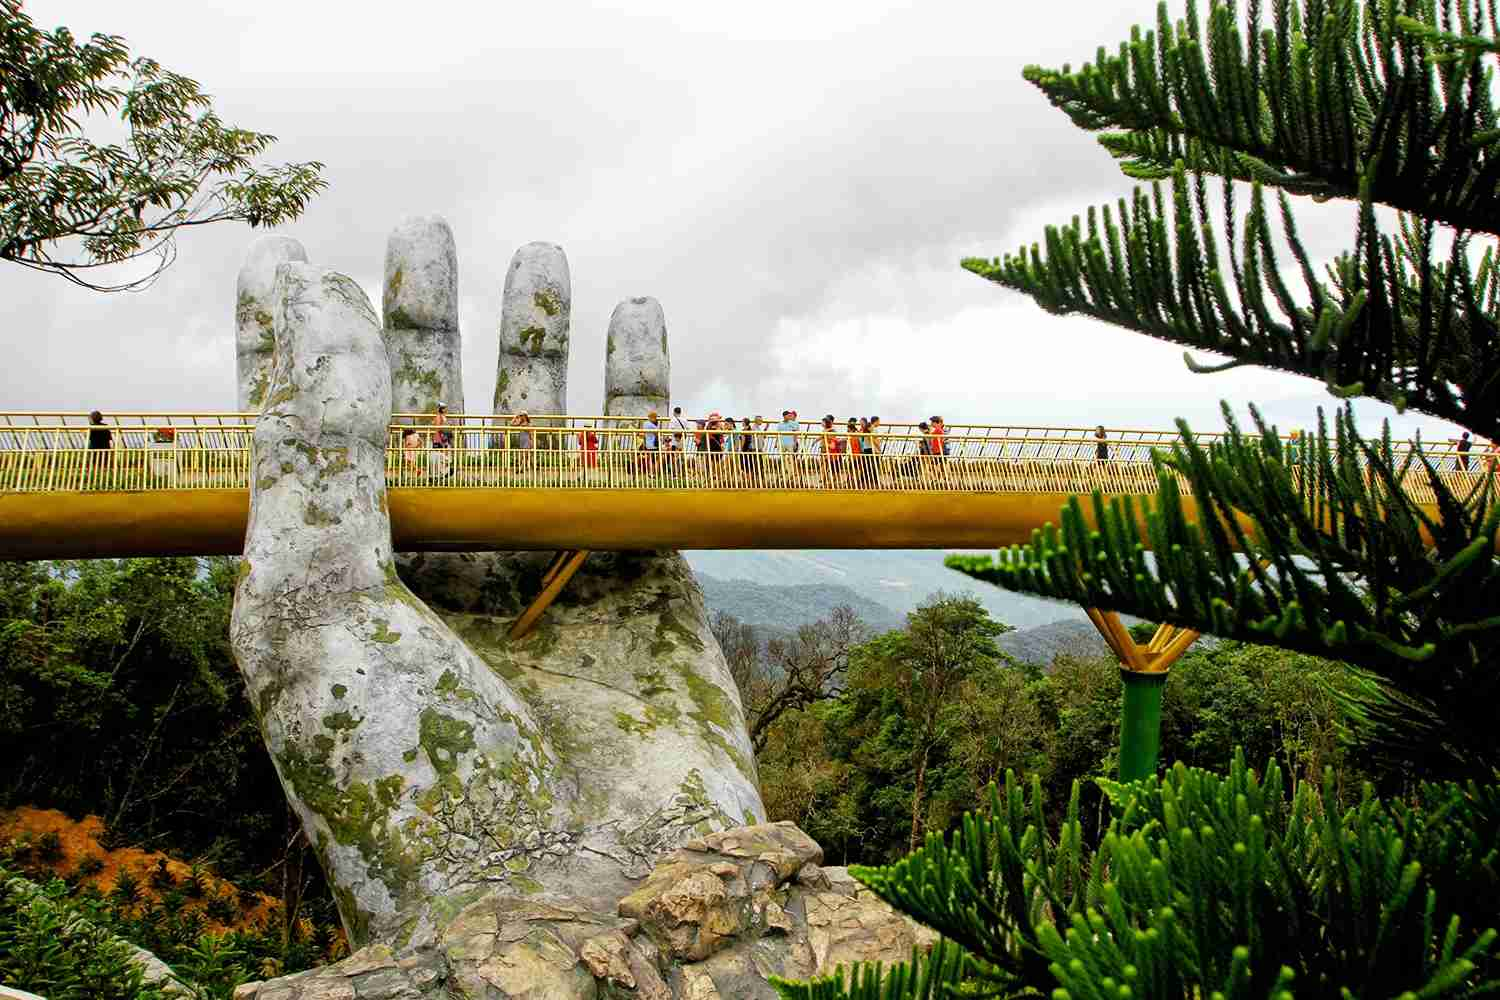 "In this photograph taken on July 31, 2018, visitors walk along the 150-meter long Cau Vang ""Golden Bridge"" in the Ba Na Hills near Danang. - Nestled in the forested hills of central Vietnam two giant concrete hands emerge from the trees, holding up a glimmering golden bridge crowded with gleeful visitors taking selfies at the country"